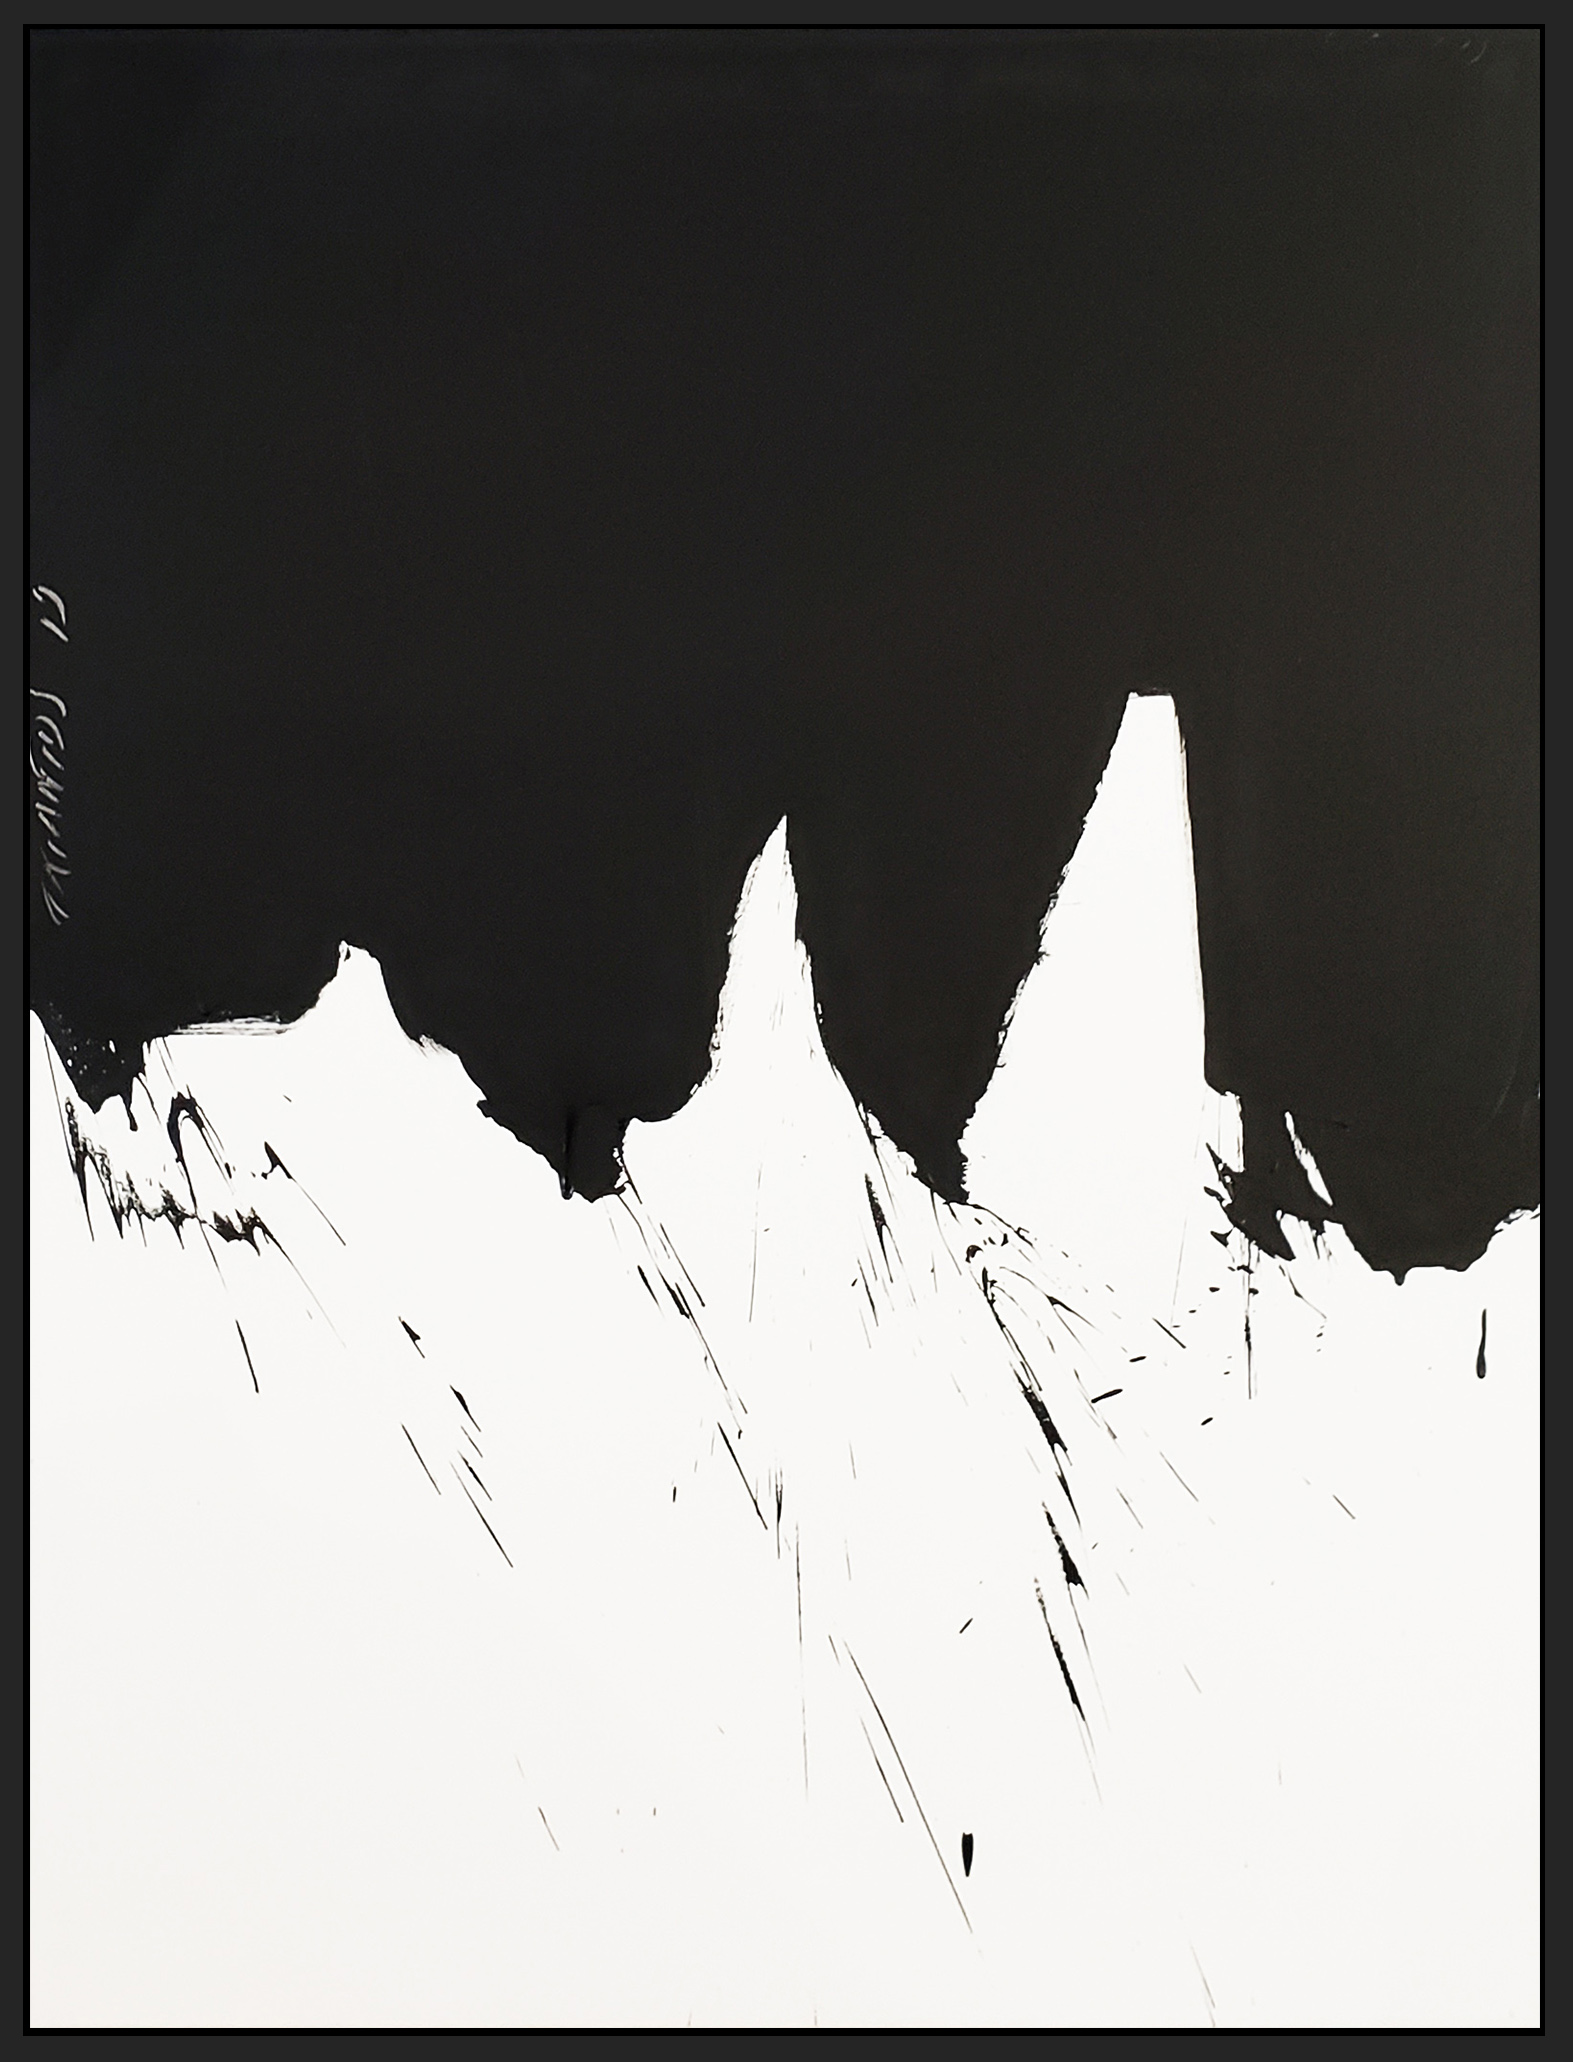 "Black and White #80, 2019, acrylic on canvas, 48"" x 36"" (122 x 91.4cm)"